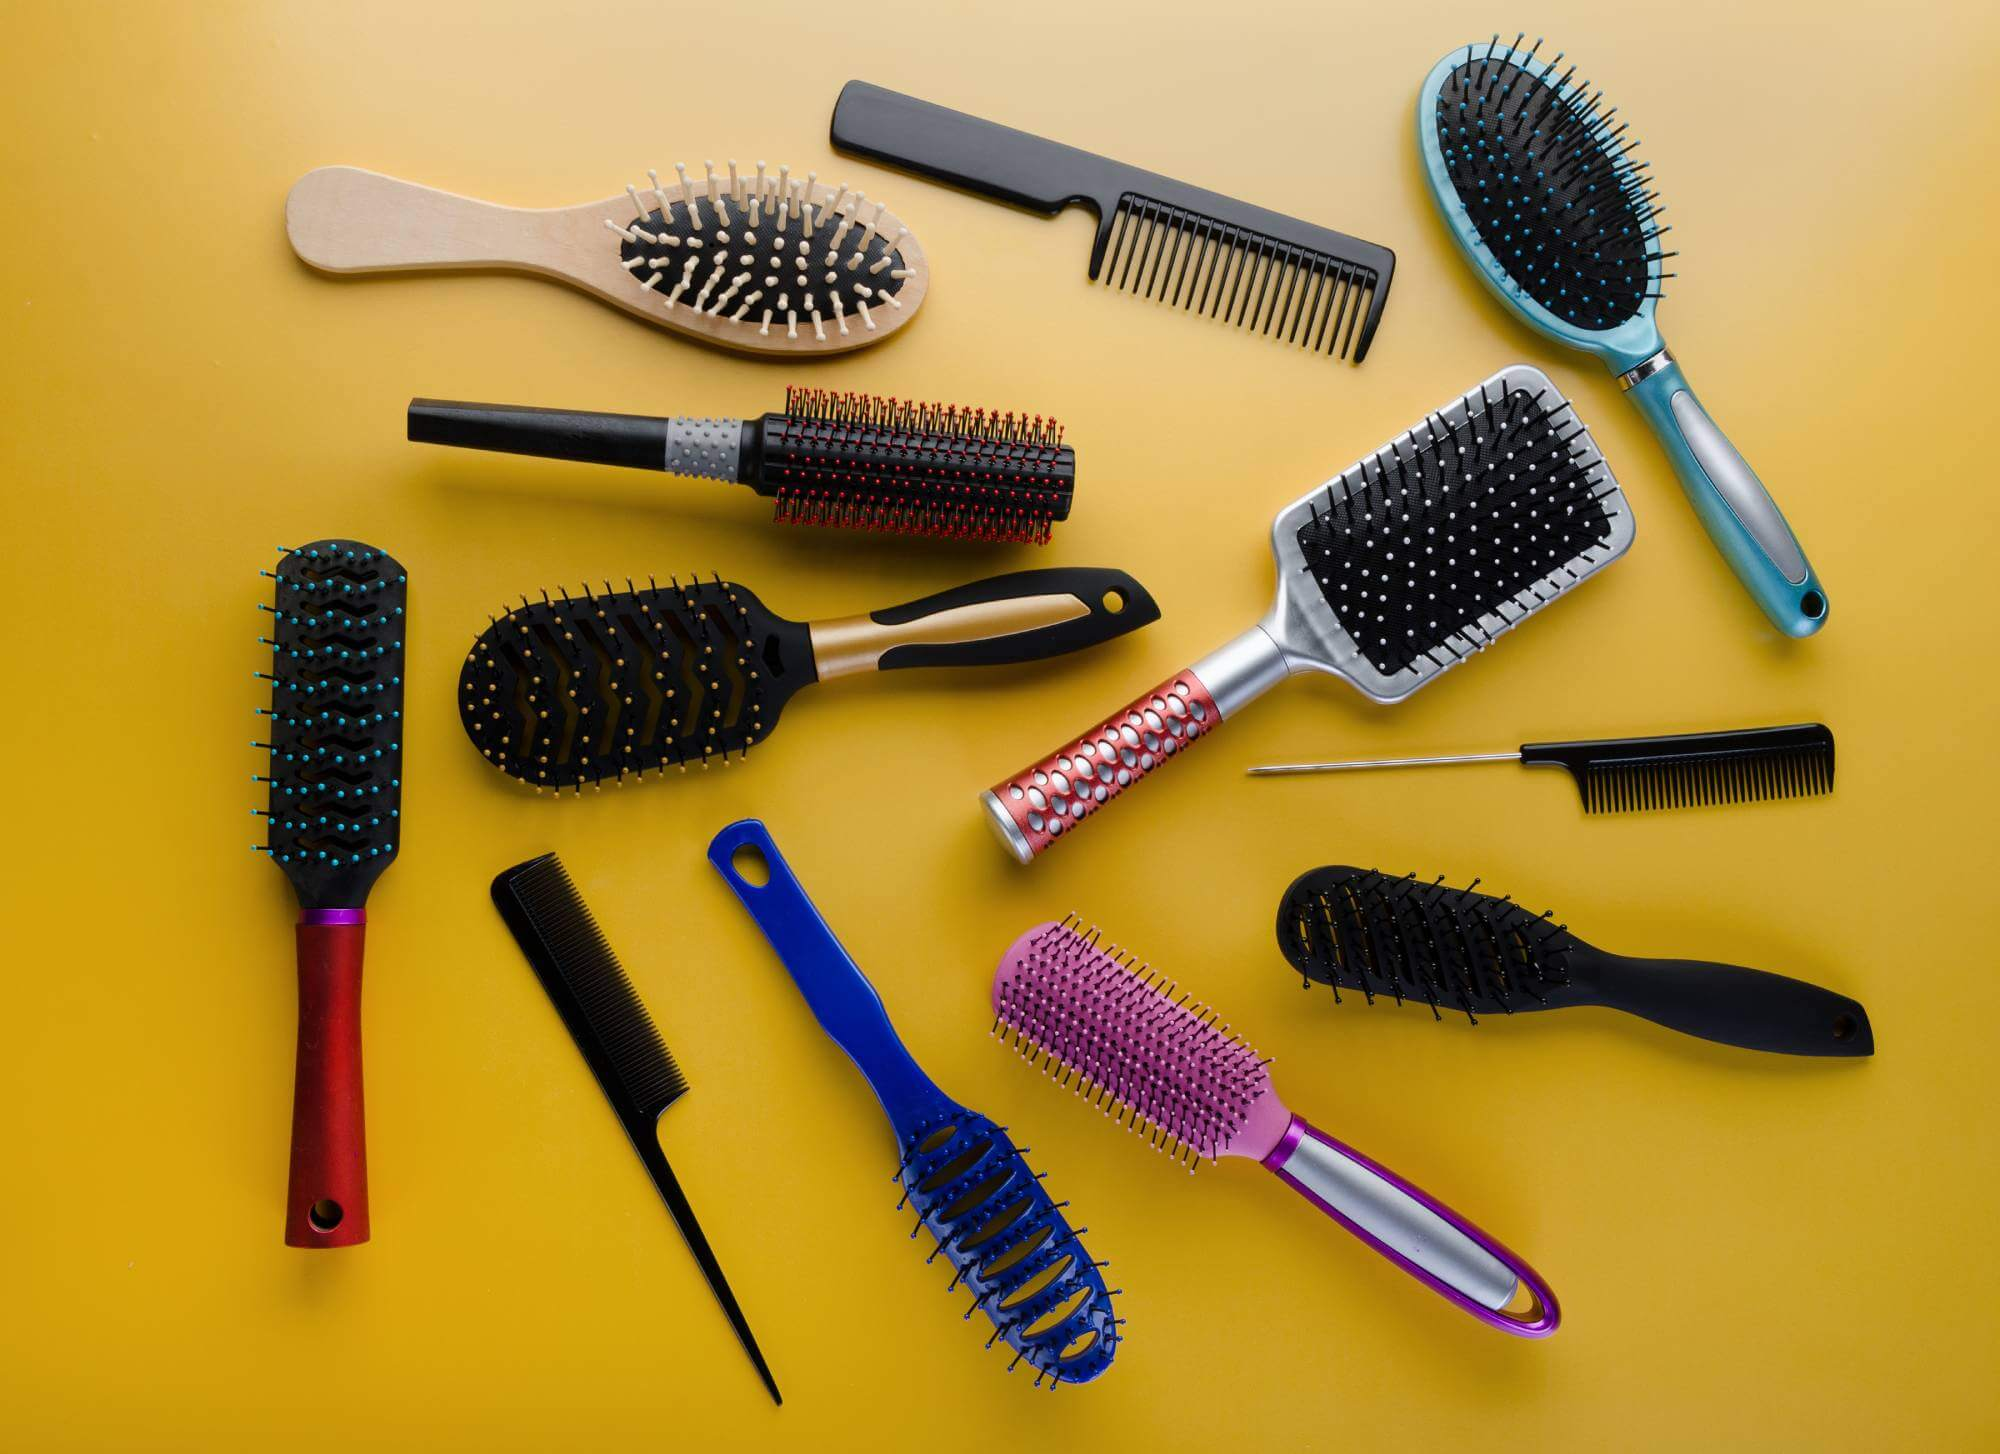 Should You Brush Your Hair If You Suffer From Hair Loss?